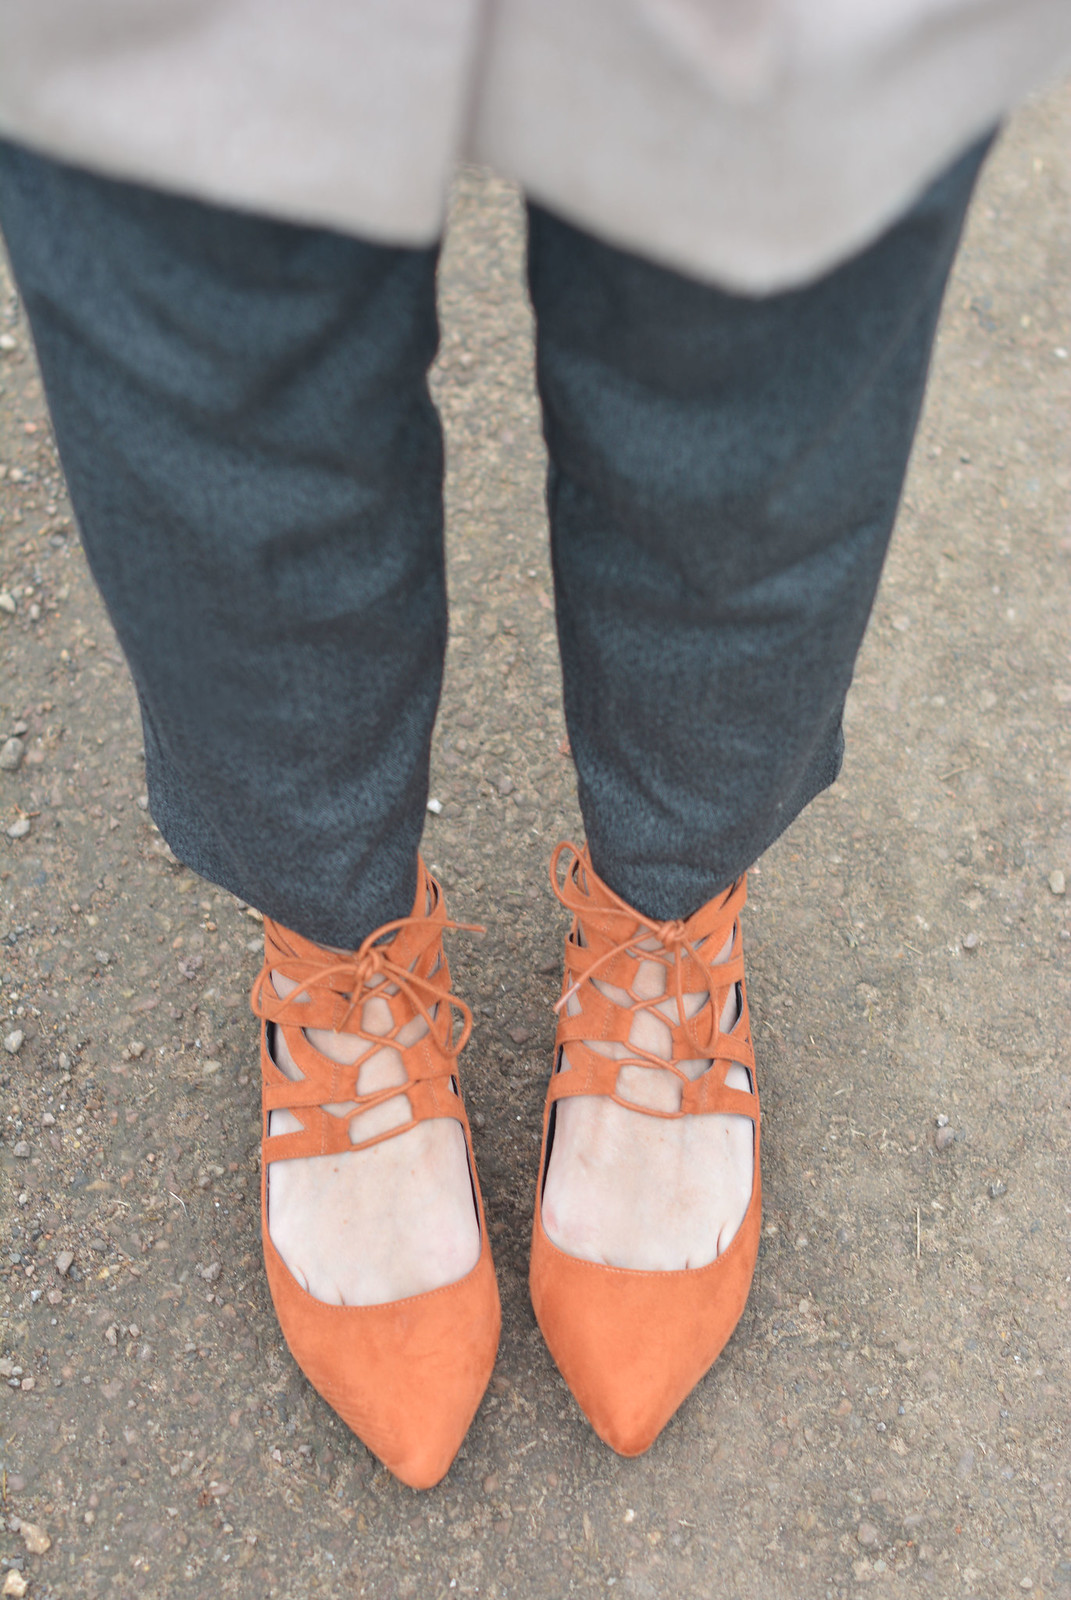 Winter neutrals, orange lace-up flats